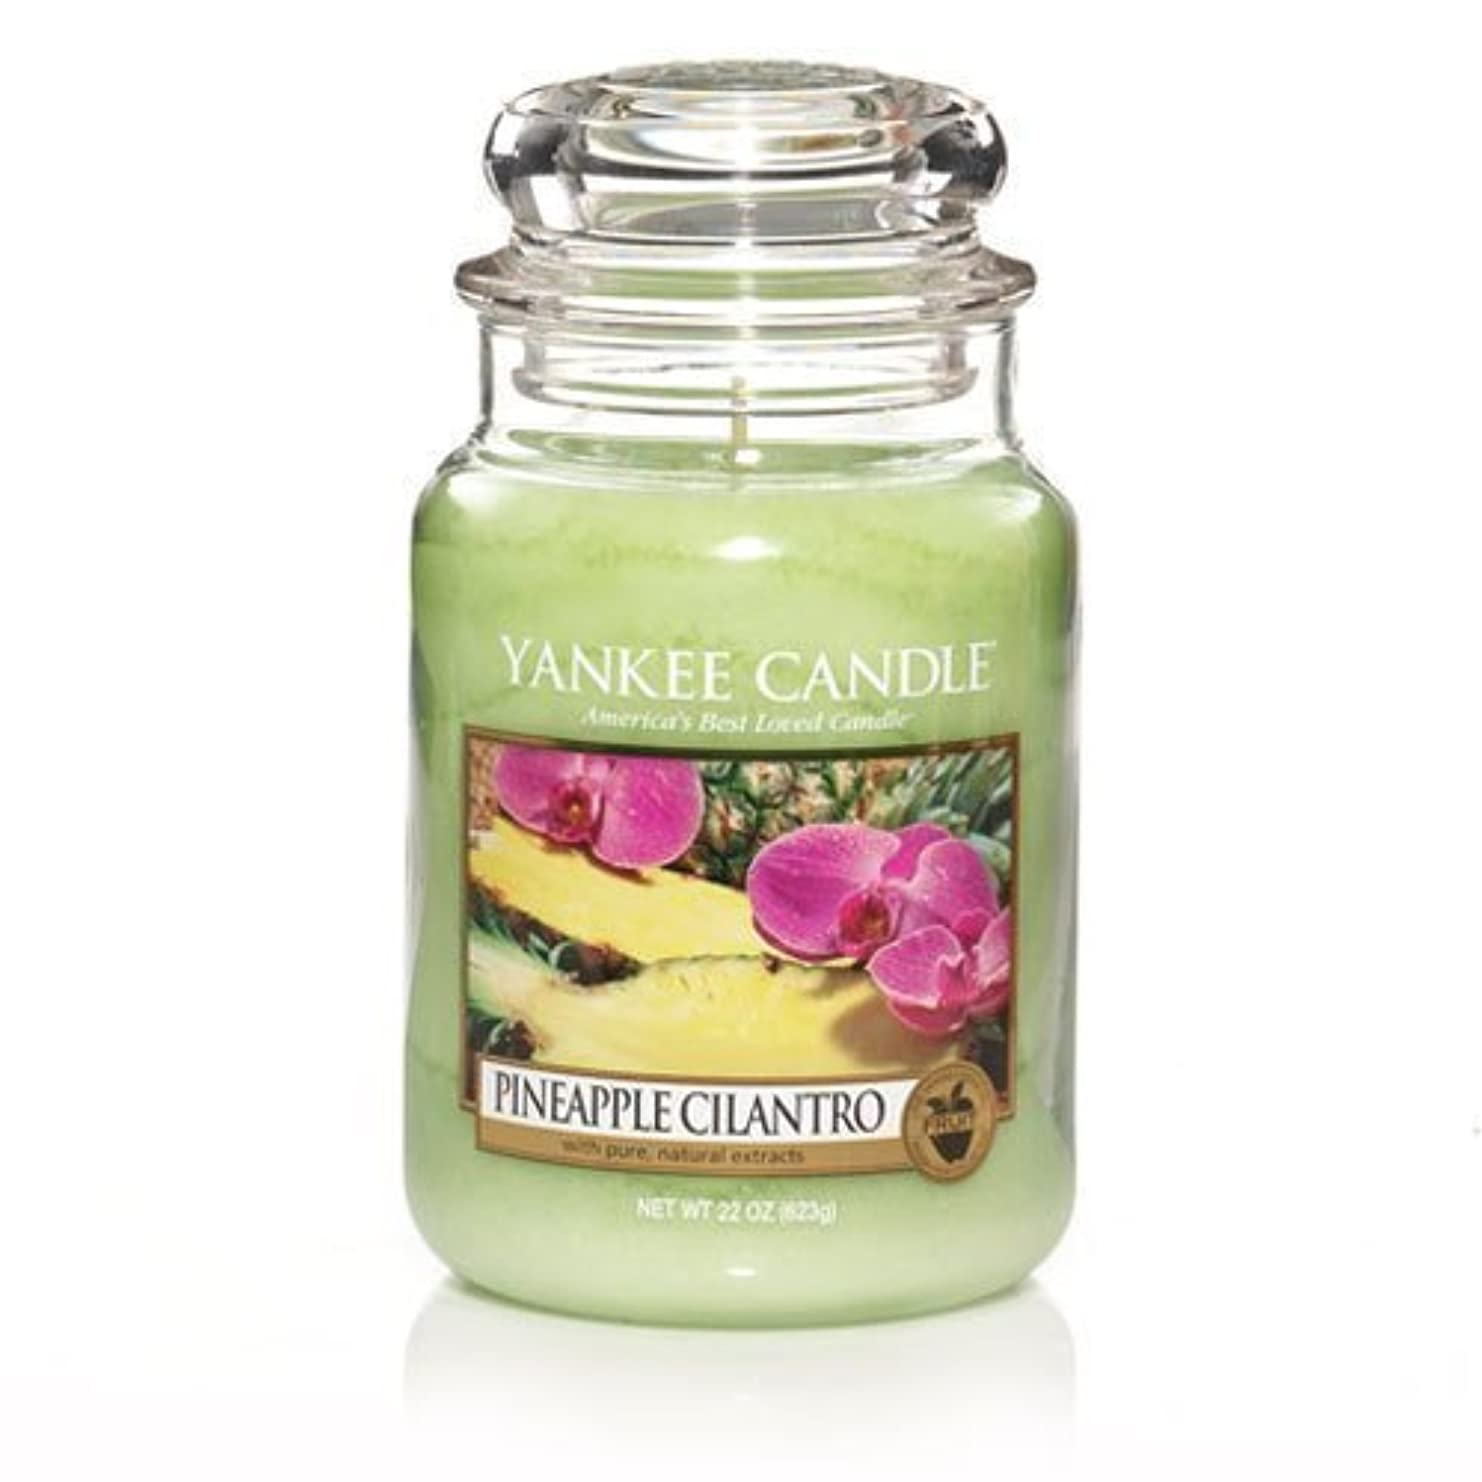 ケニアレクリエーション結婚式Yankee Candle Pineapple Cilantro Large Jar 22oz Candle by Amazon source [並行輸入品]